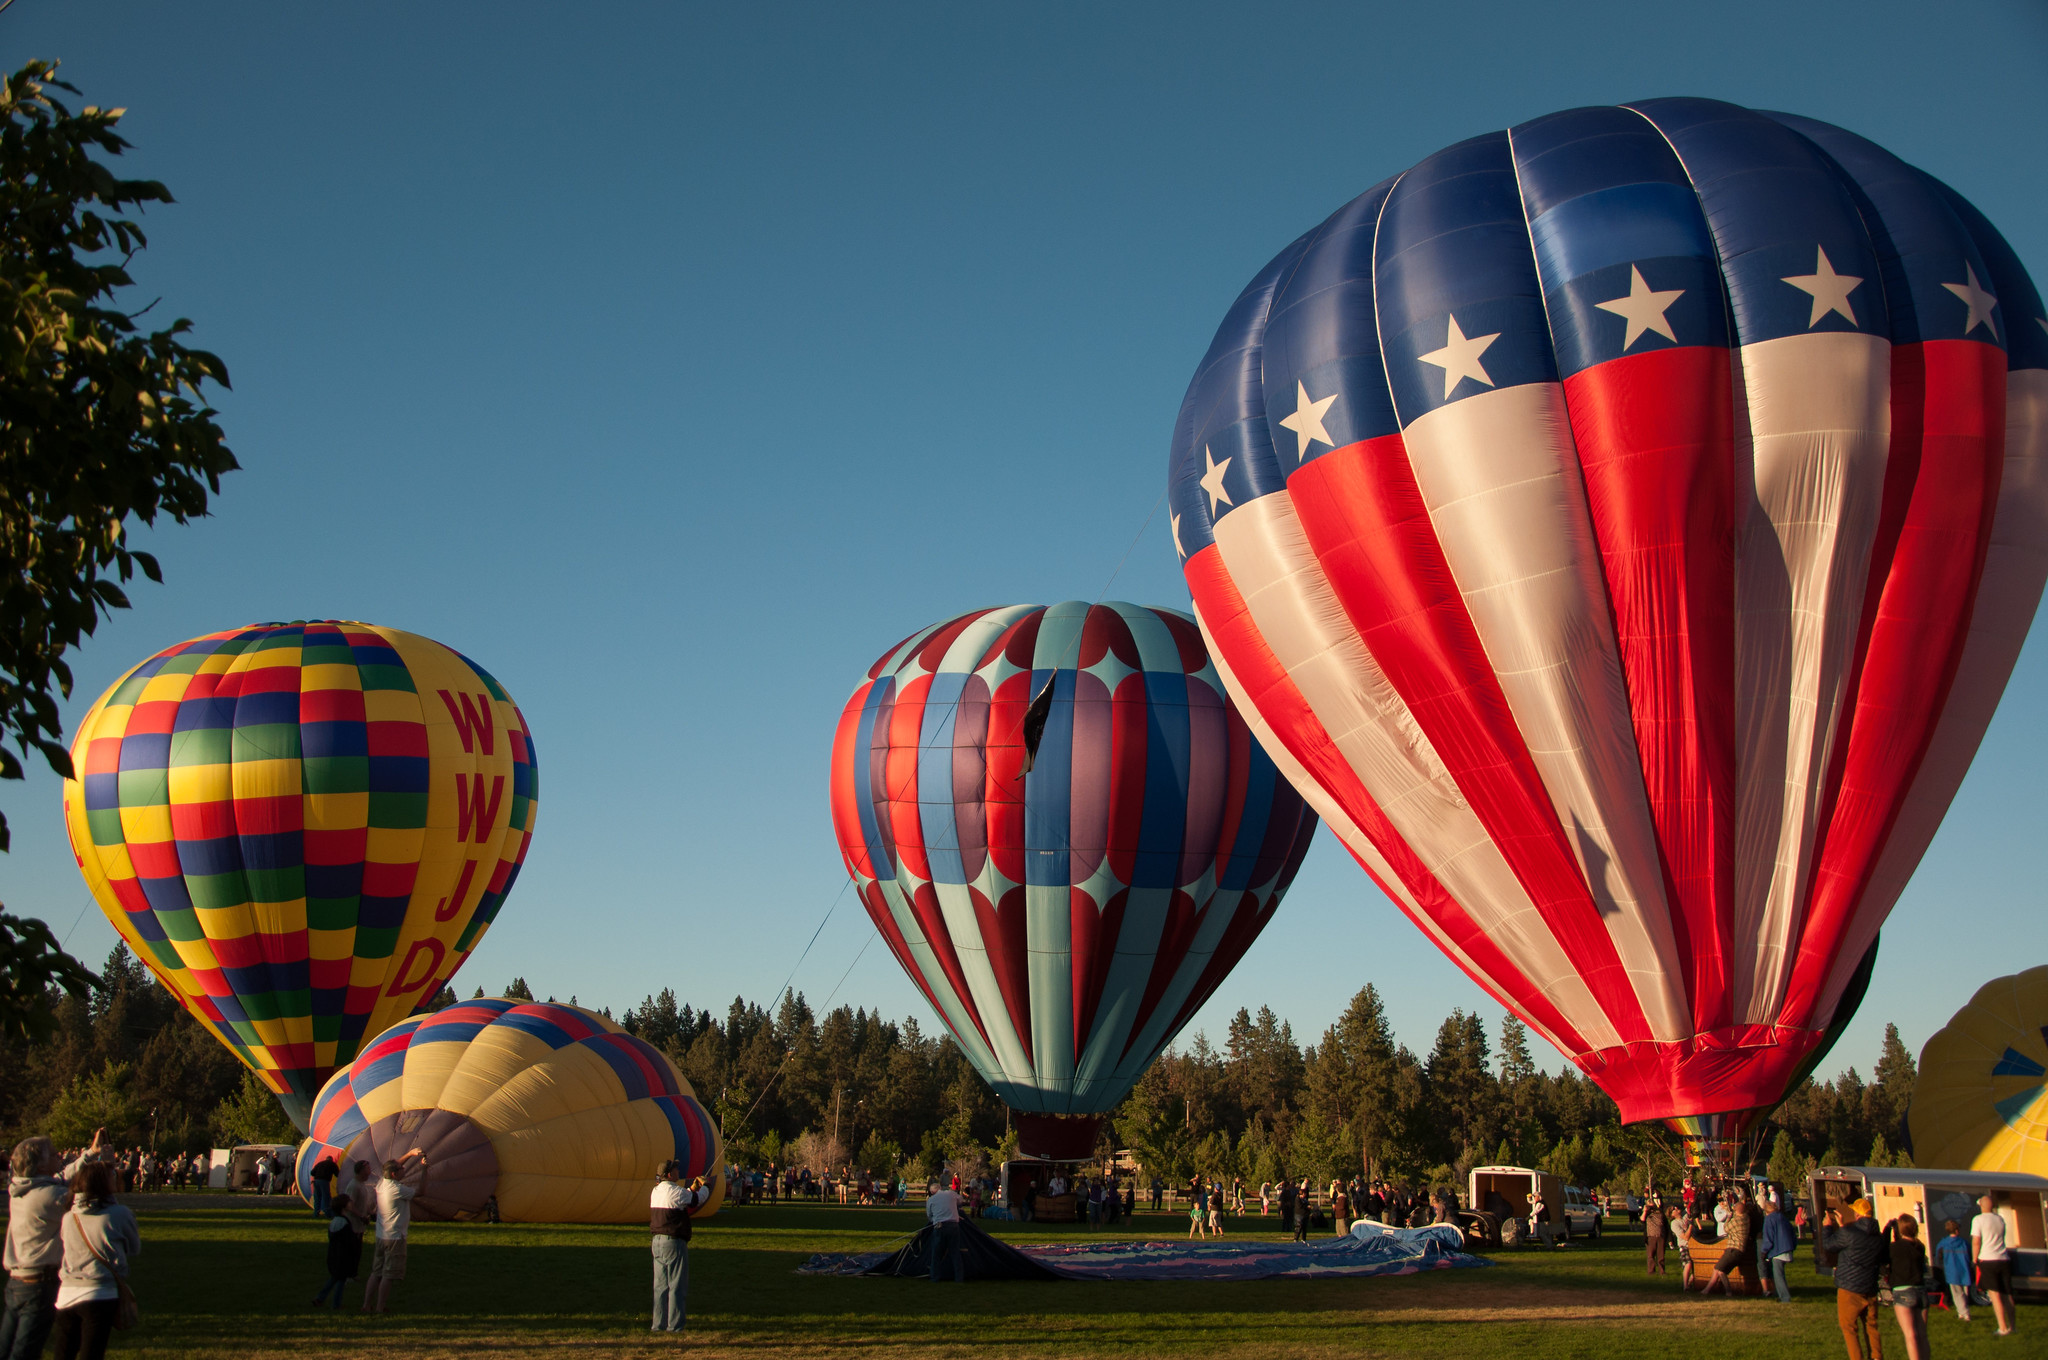 Hot air balloons lifting off in Bend Oregon